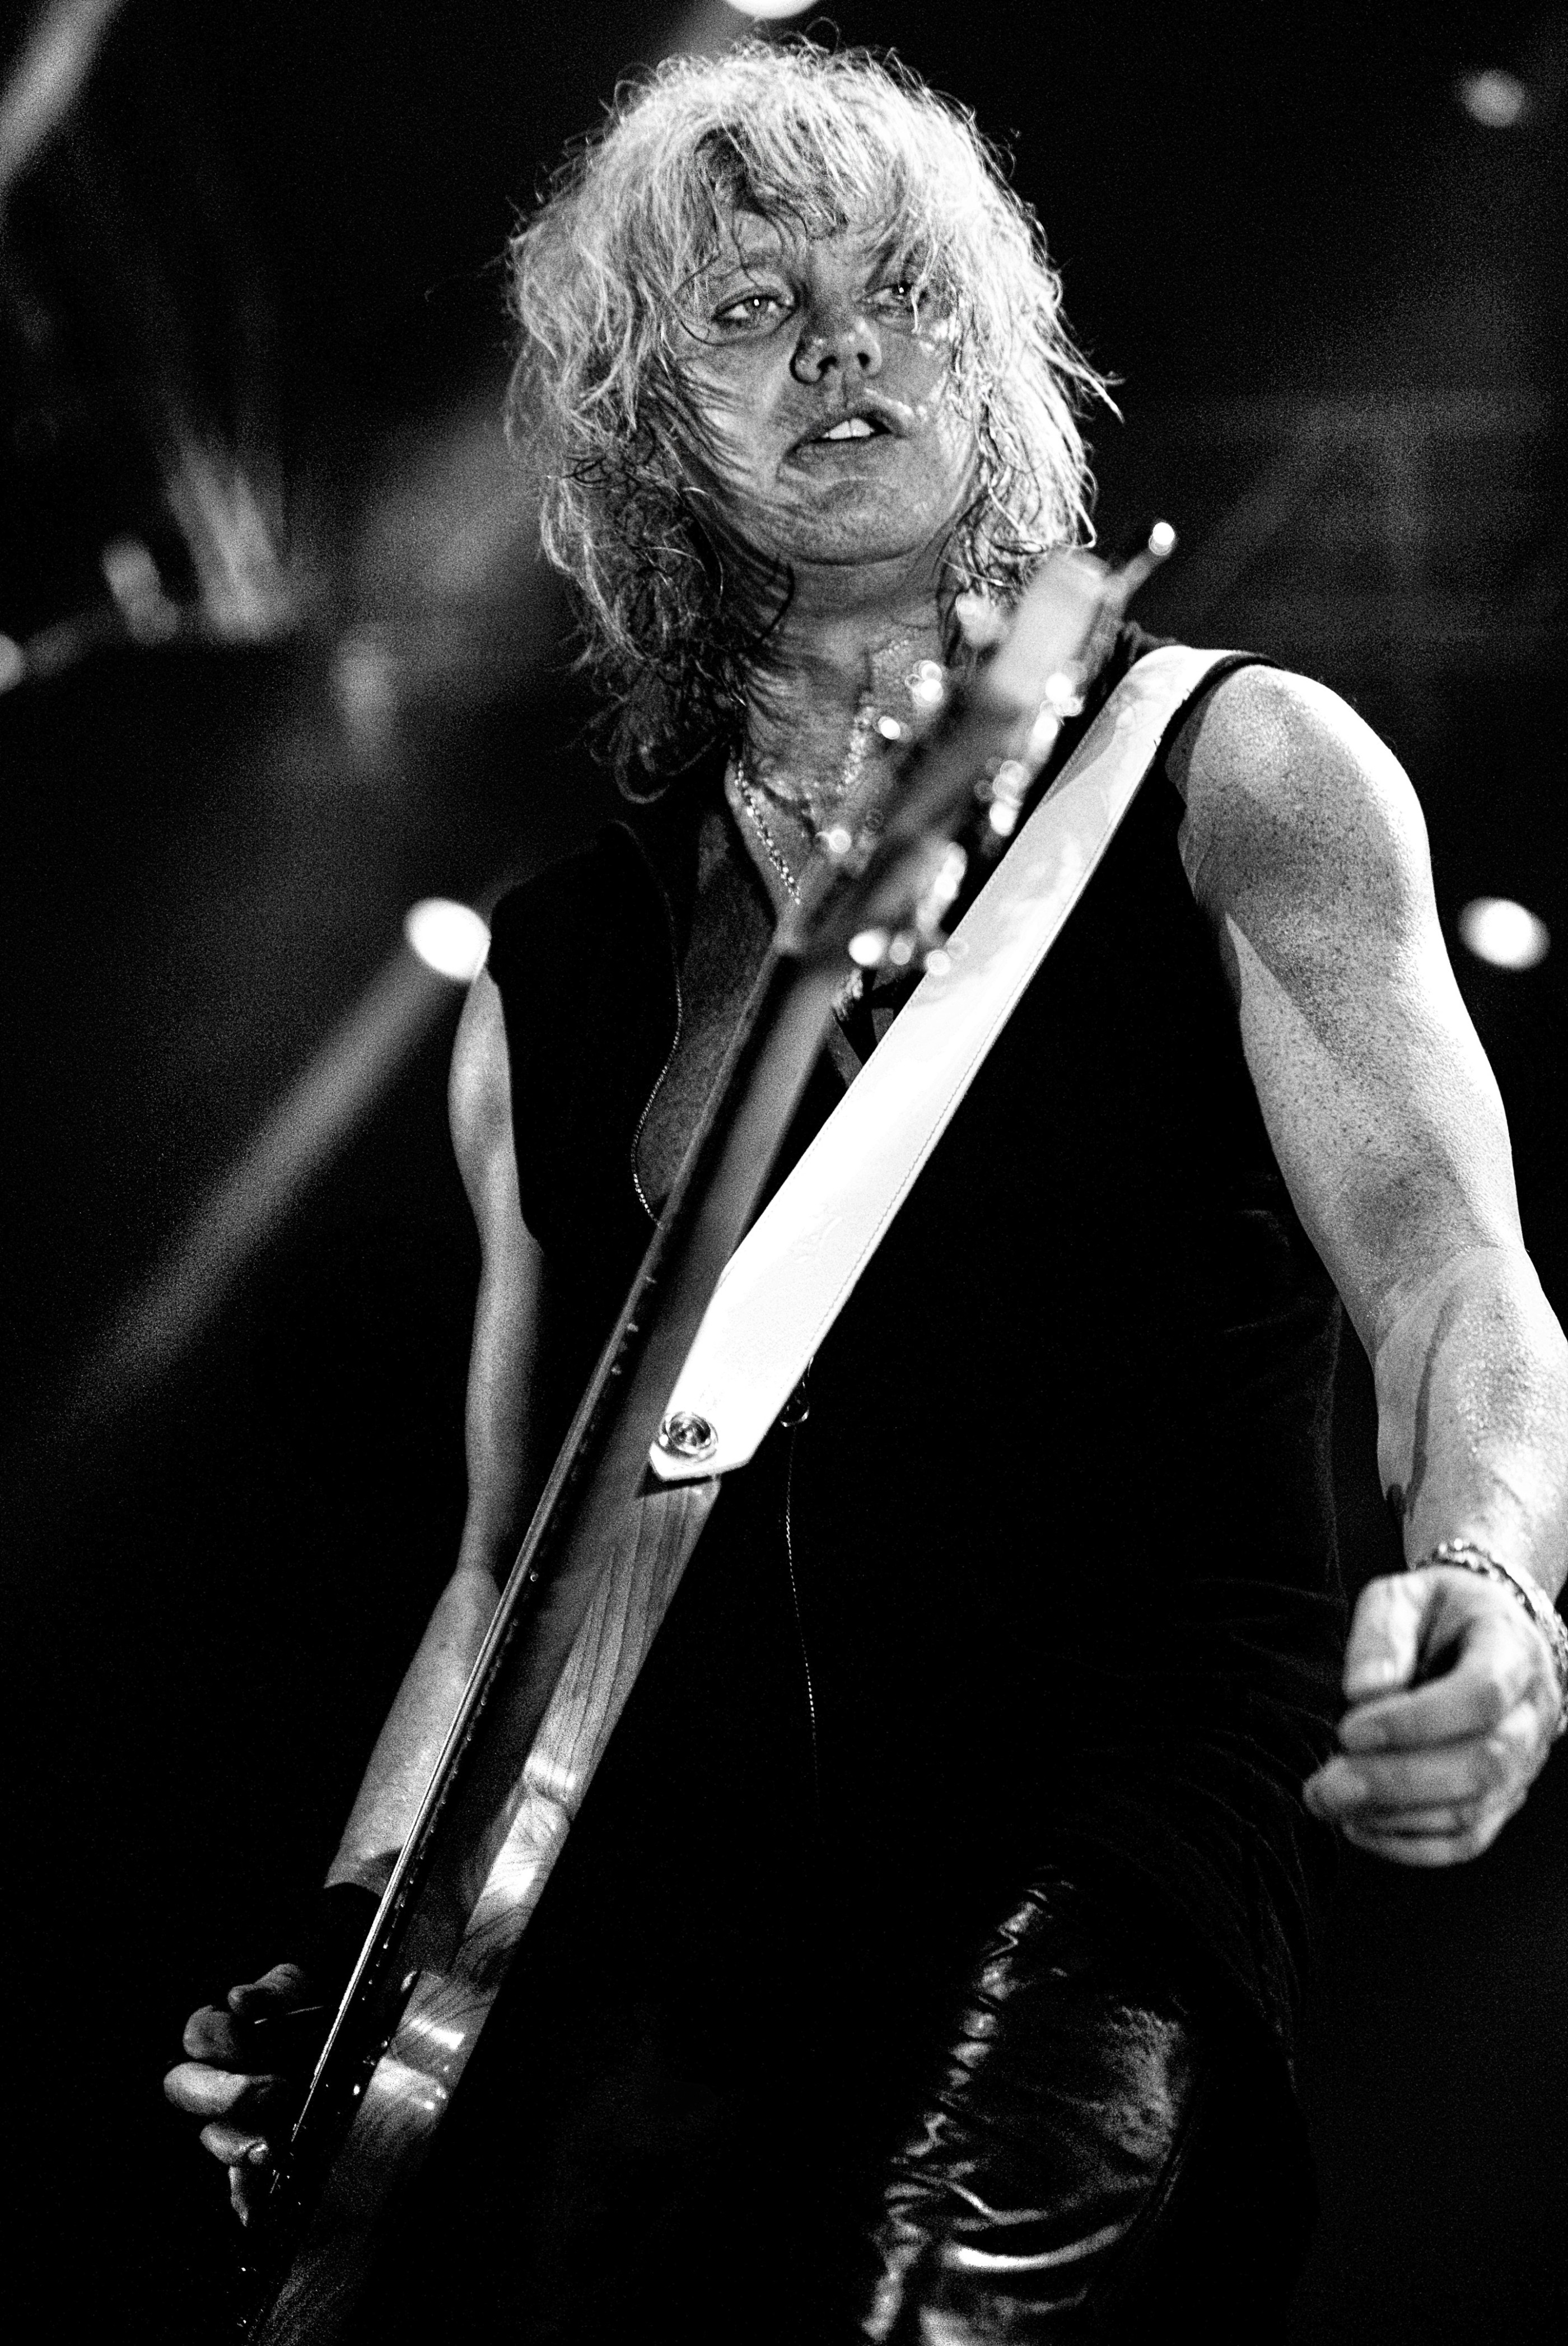 Rick Savage Def Leppard Belfast onstage 2008 by Ash Newell